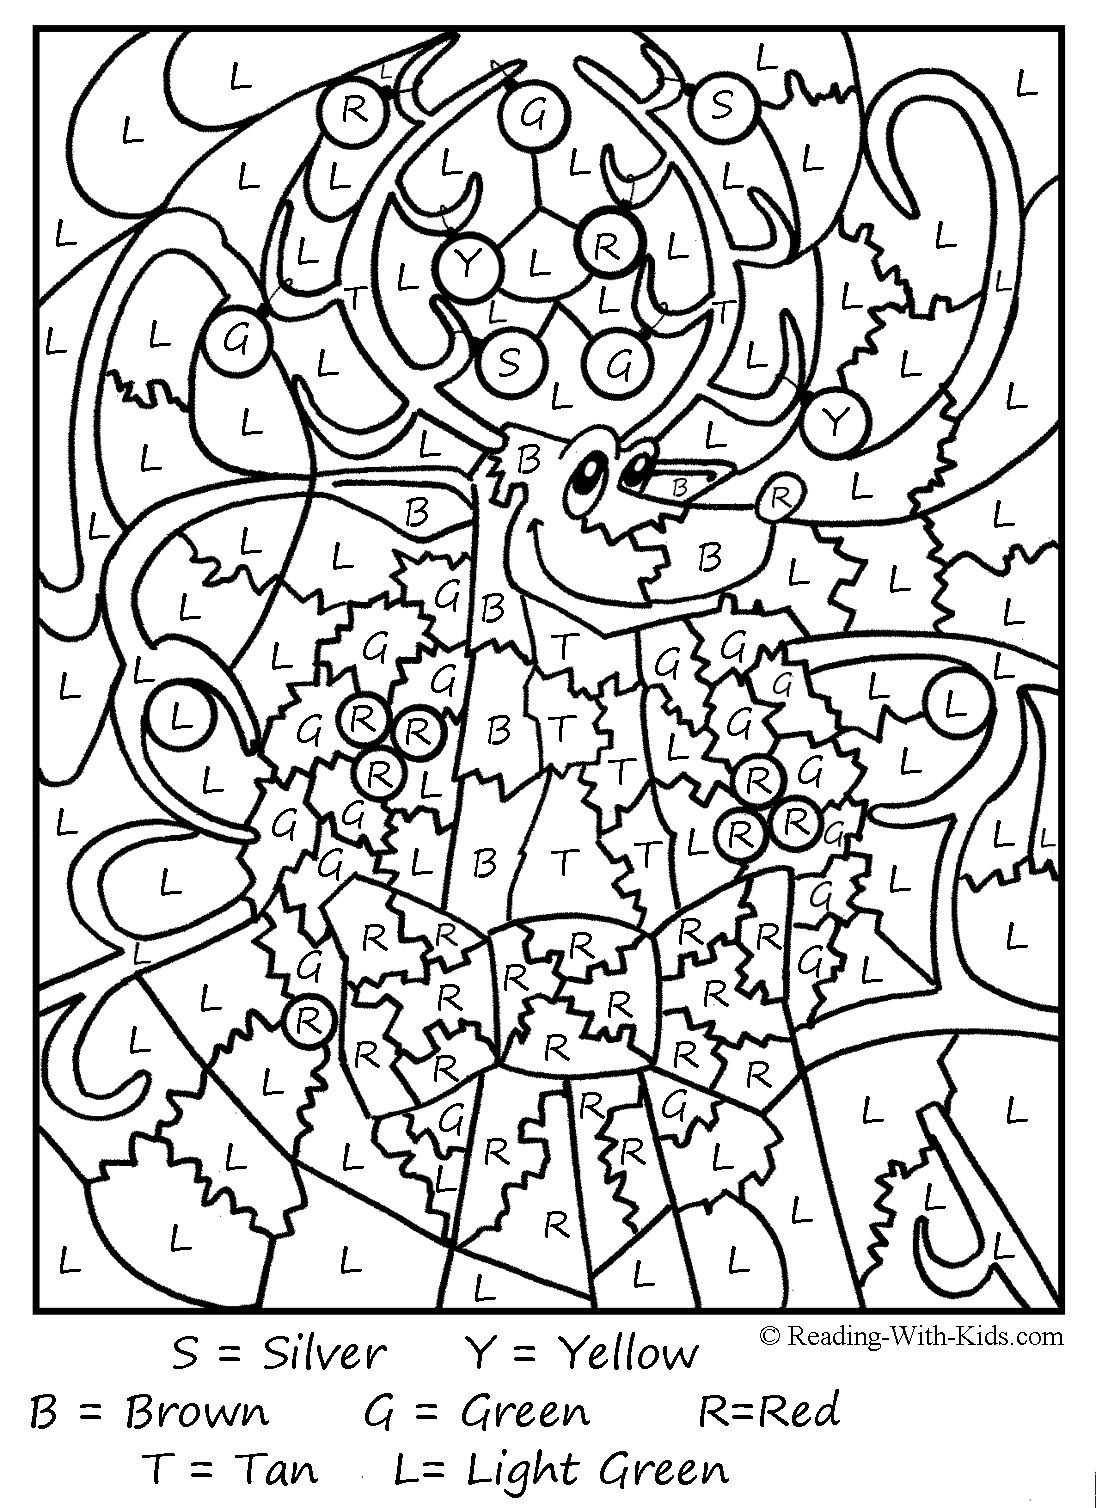 Colorbyletter and colorbynumber coloring pages are fun and